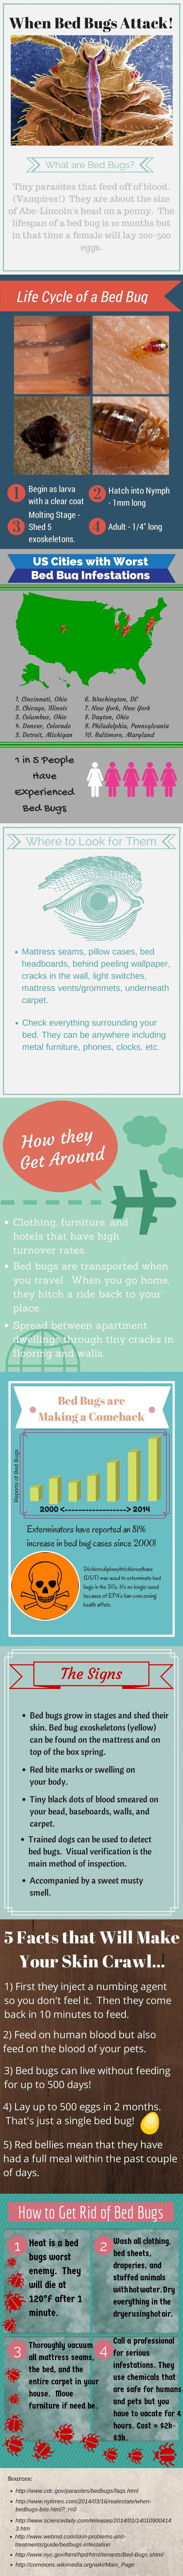 7 best bed bugs images on pinterest pest control bed bugs and 3 4